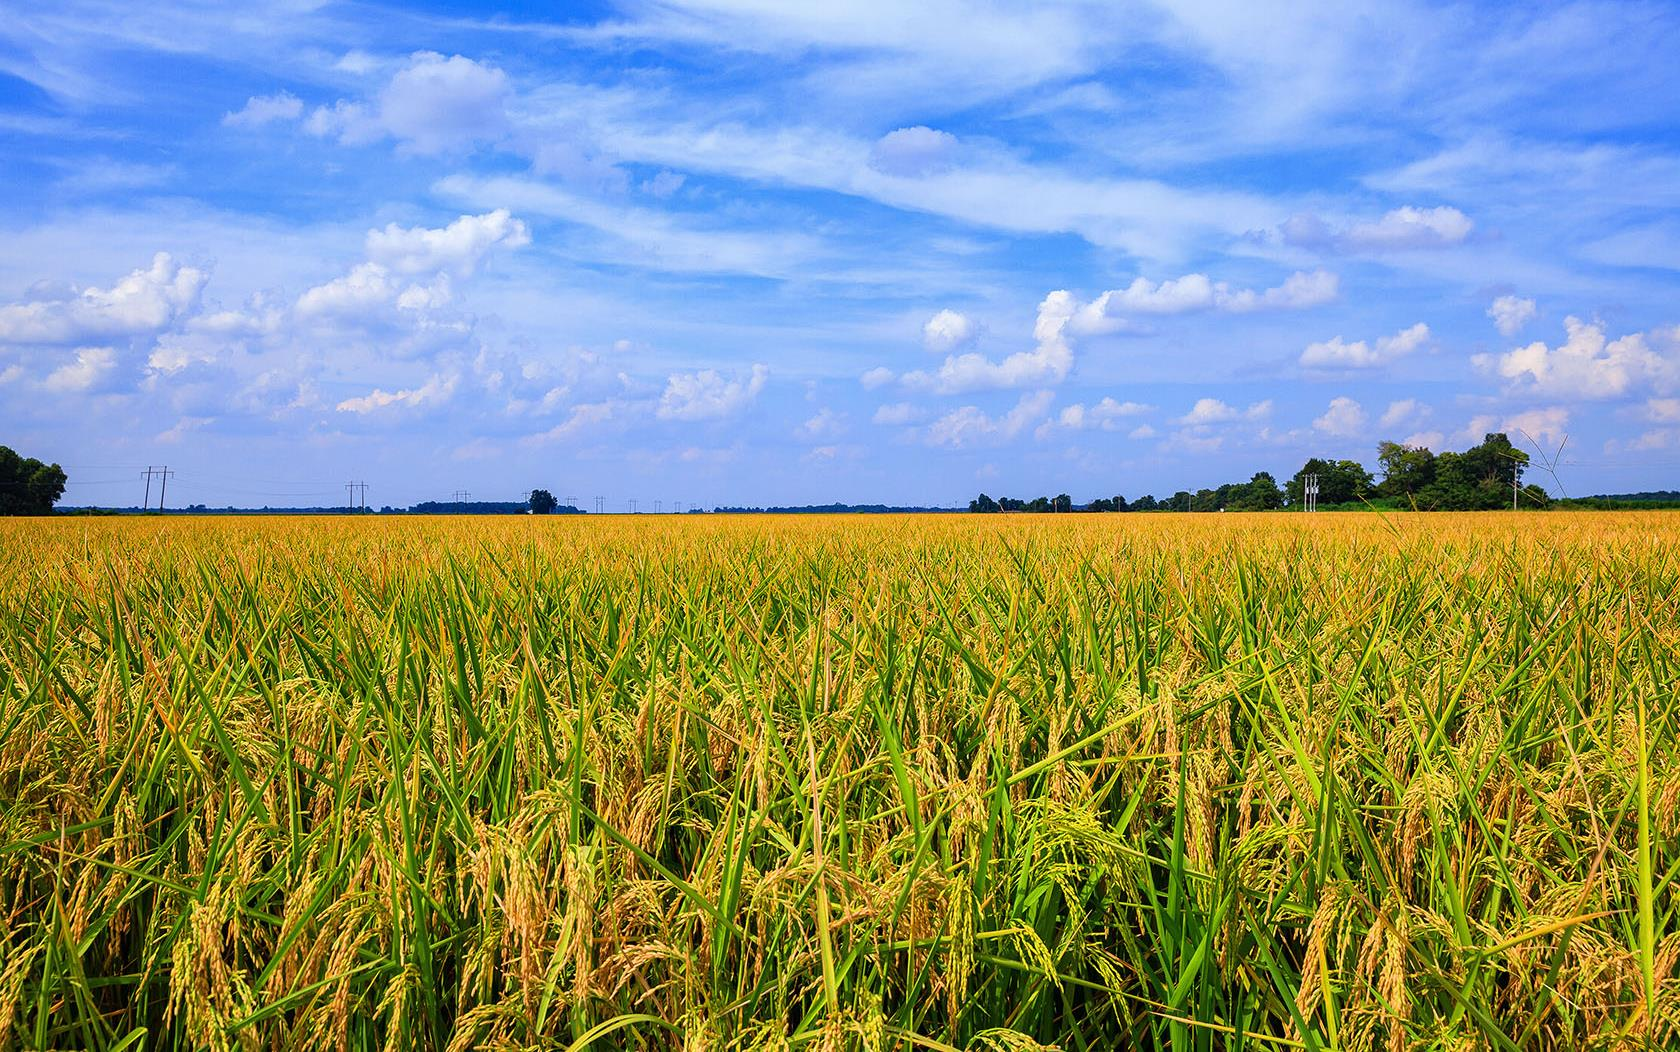 Yellow/green rice field under brilliant blue sky with fluffy white clouds, some trees in background